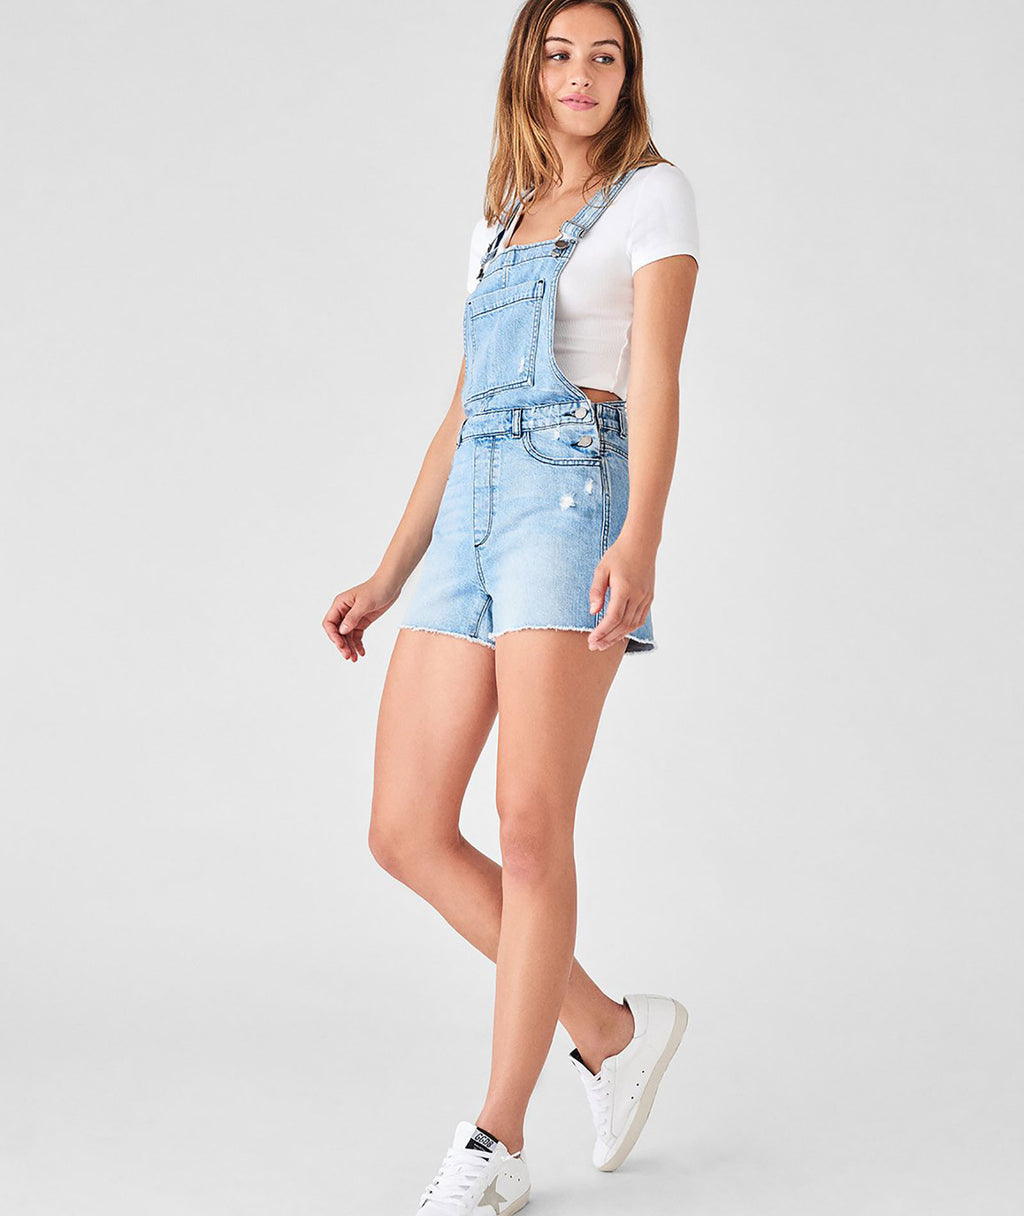 DL8188 Women's Abigail Denim Overalls